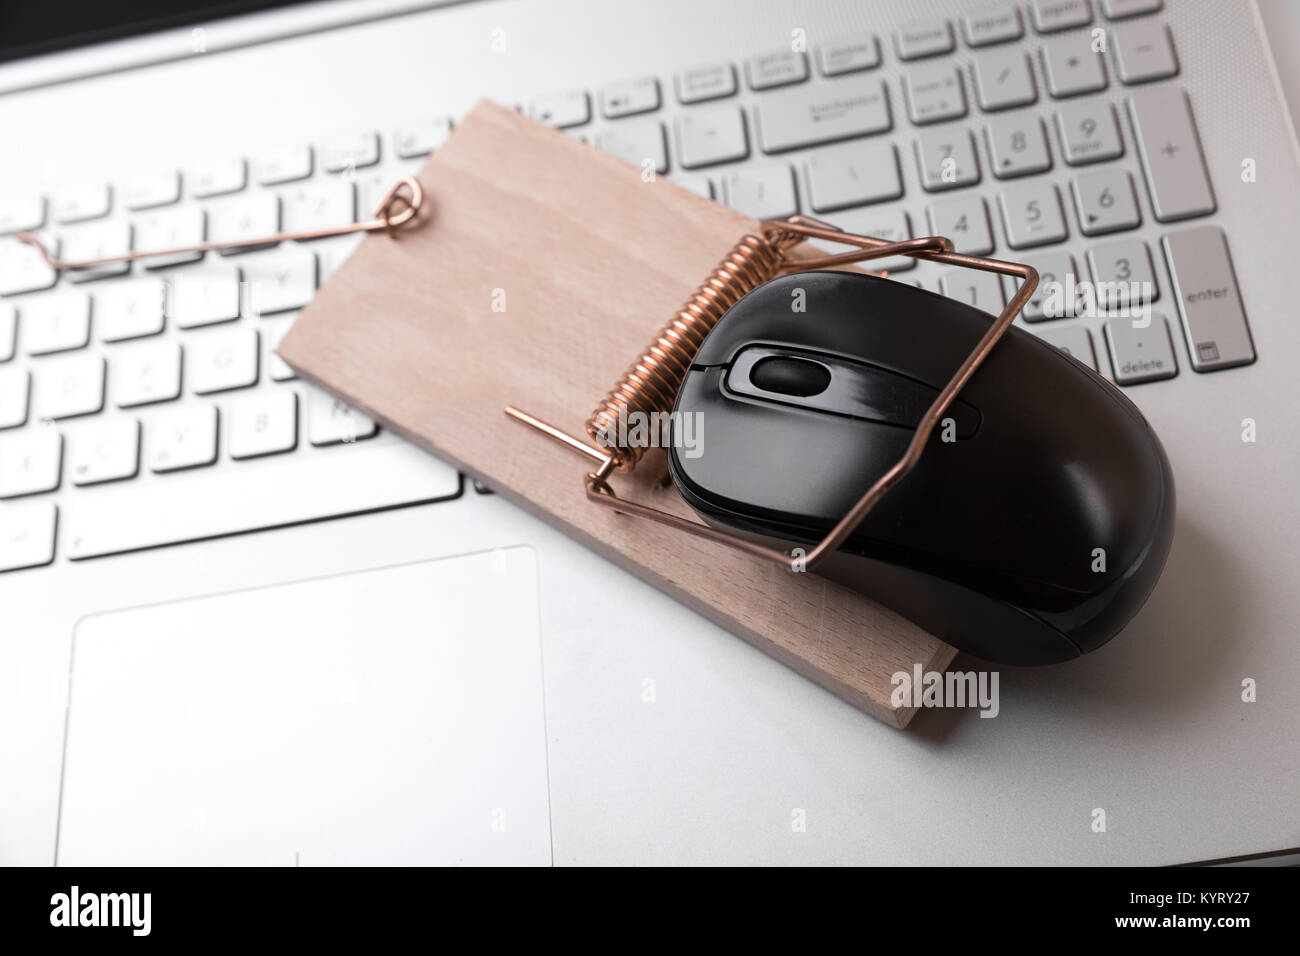 computer mouse in mousetrap on laptop keyboard - censored internet and crime concept - Stock Image